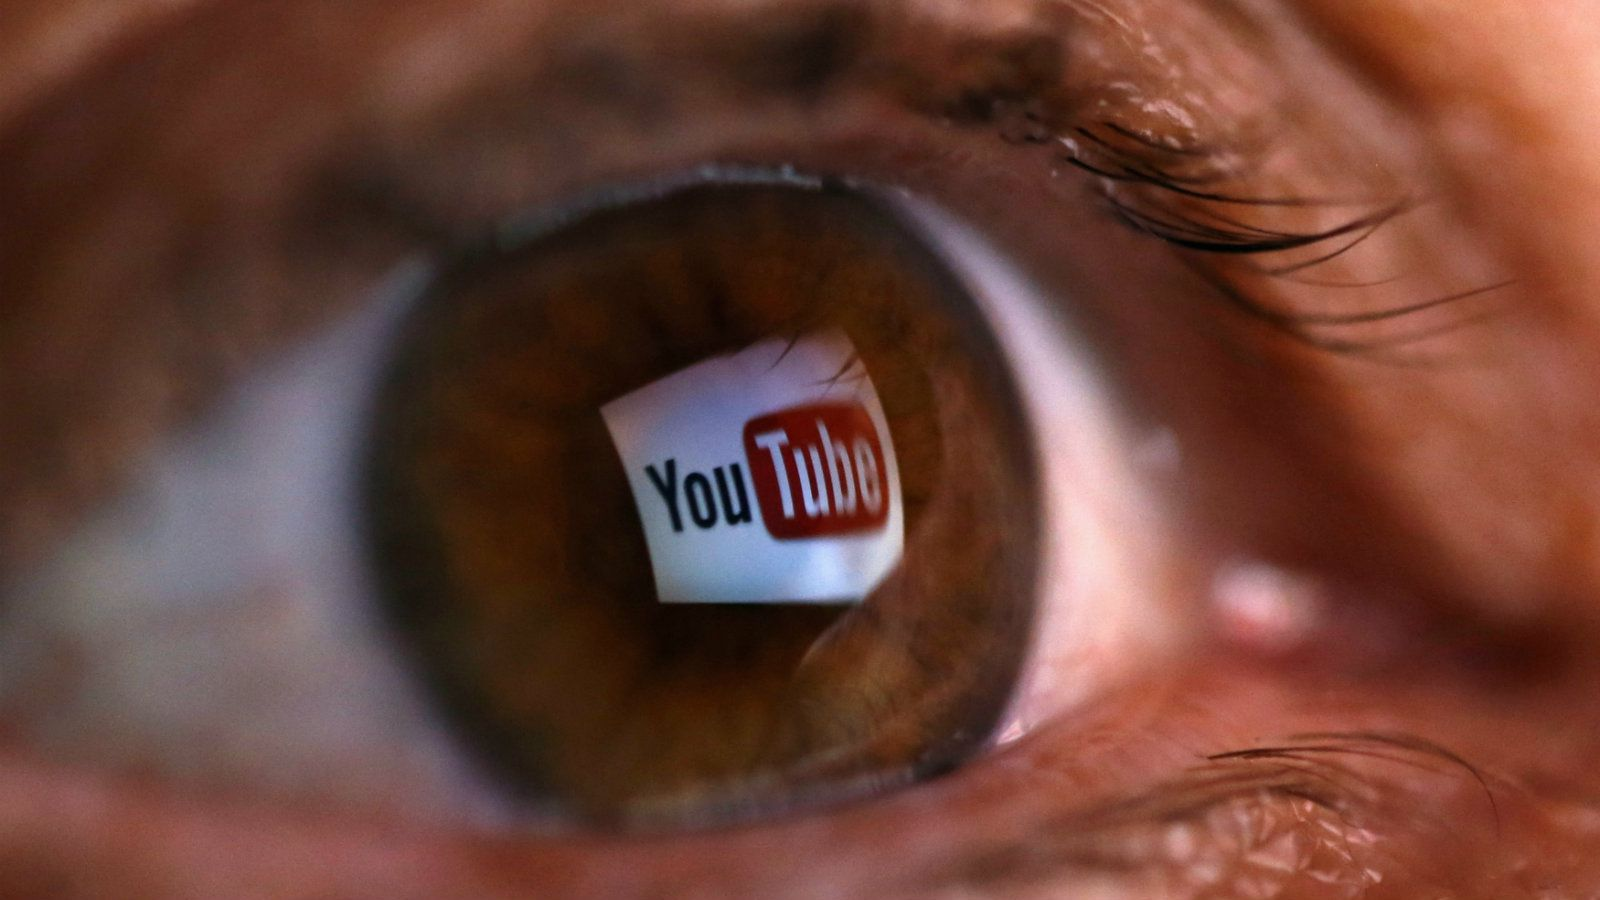 FILE PHOTO: A picture illustration shows a YouTube logo reflected in a person's eye June 18, 2014.